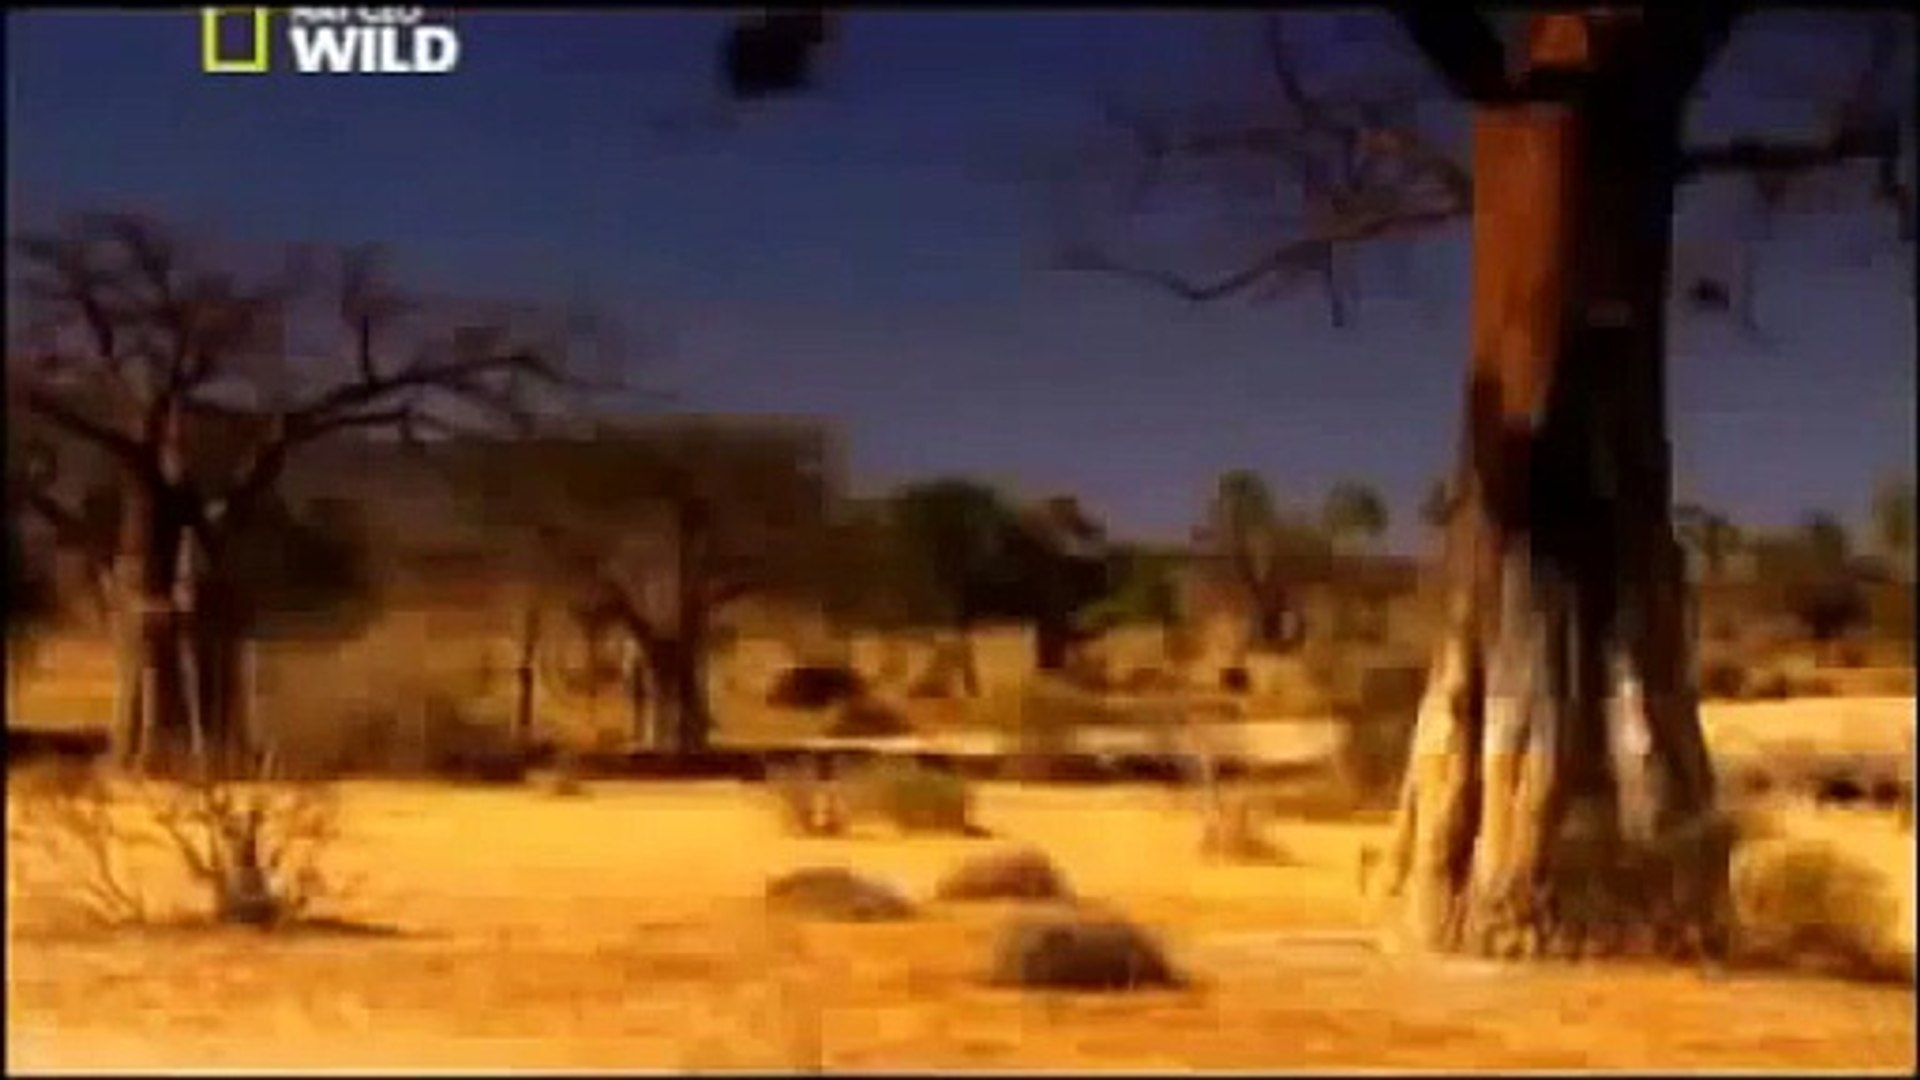 Documentary Lion Battle zone full documentary wildlife animals 2013 HD,Documentary (TV Gen